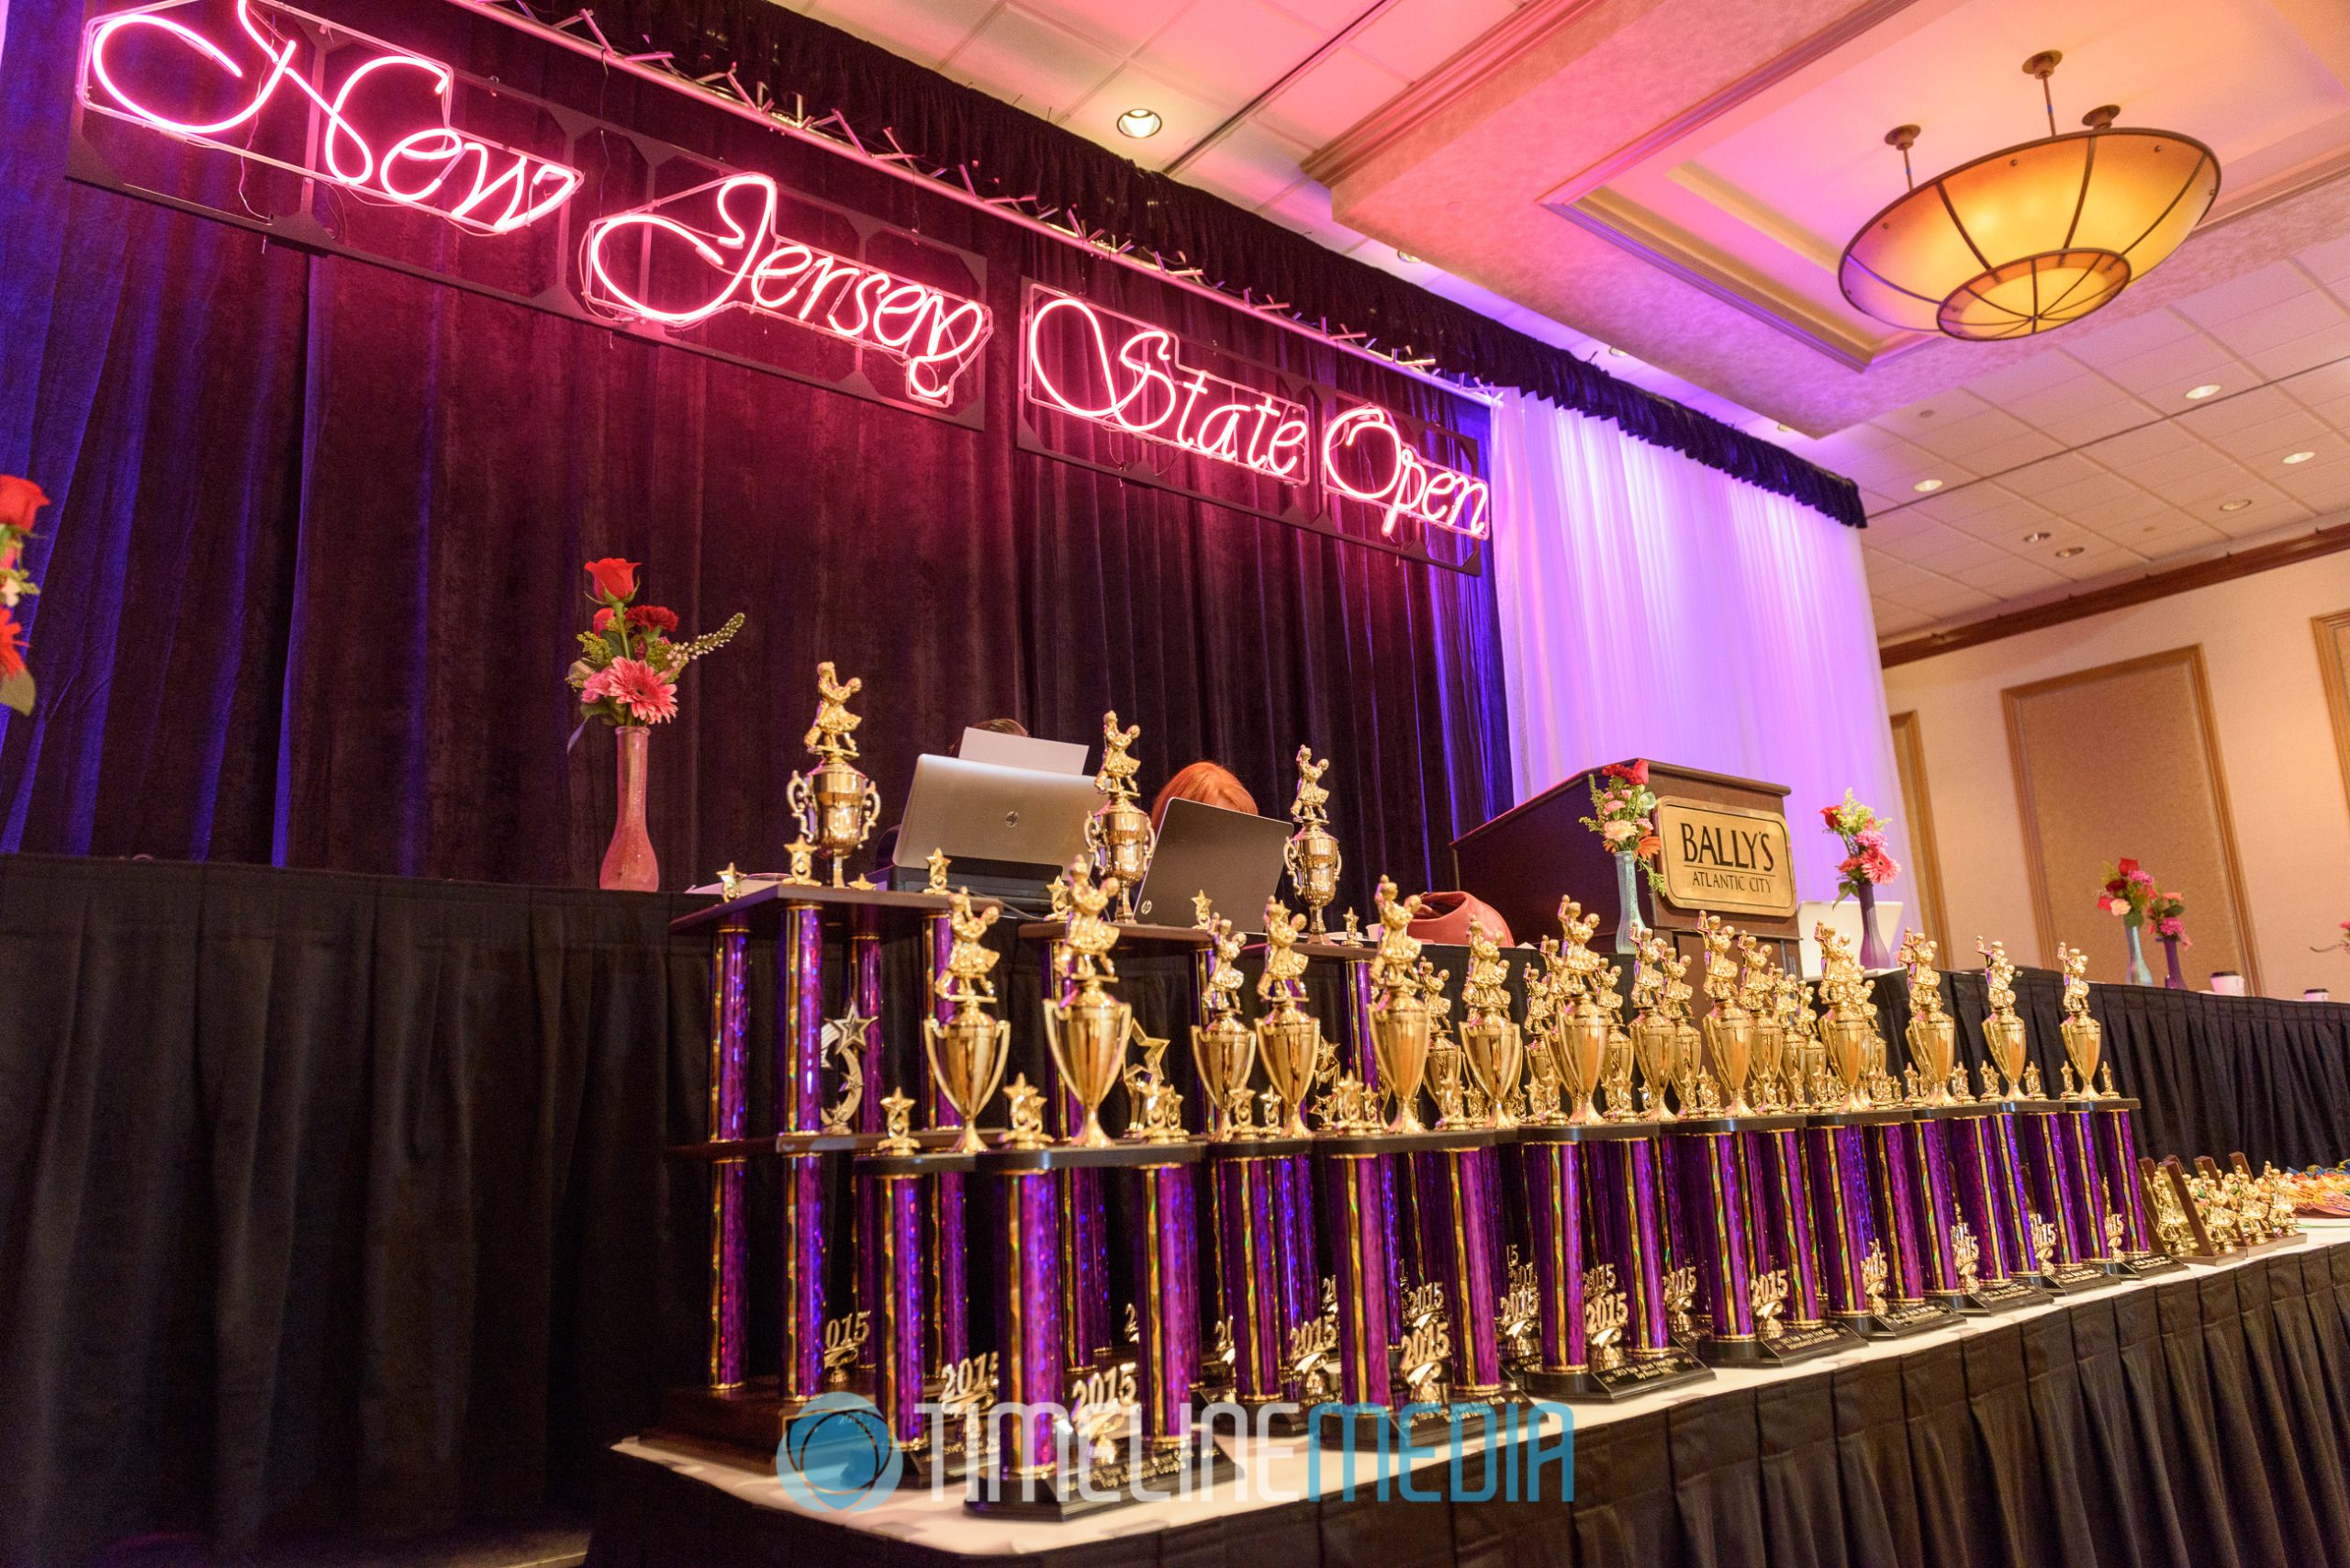 Dance competition trophies from the New Jersey State Open at Bally's Atlantic City, NJ ©TimeLine Media